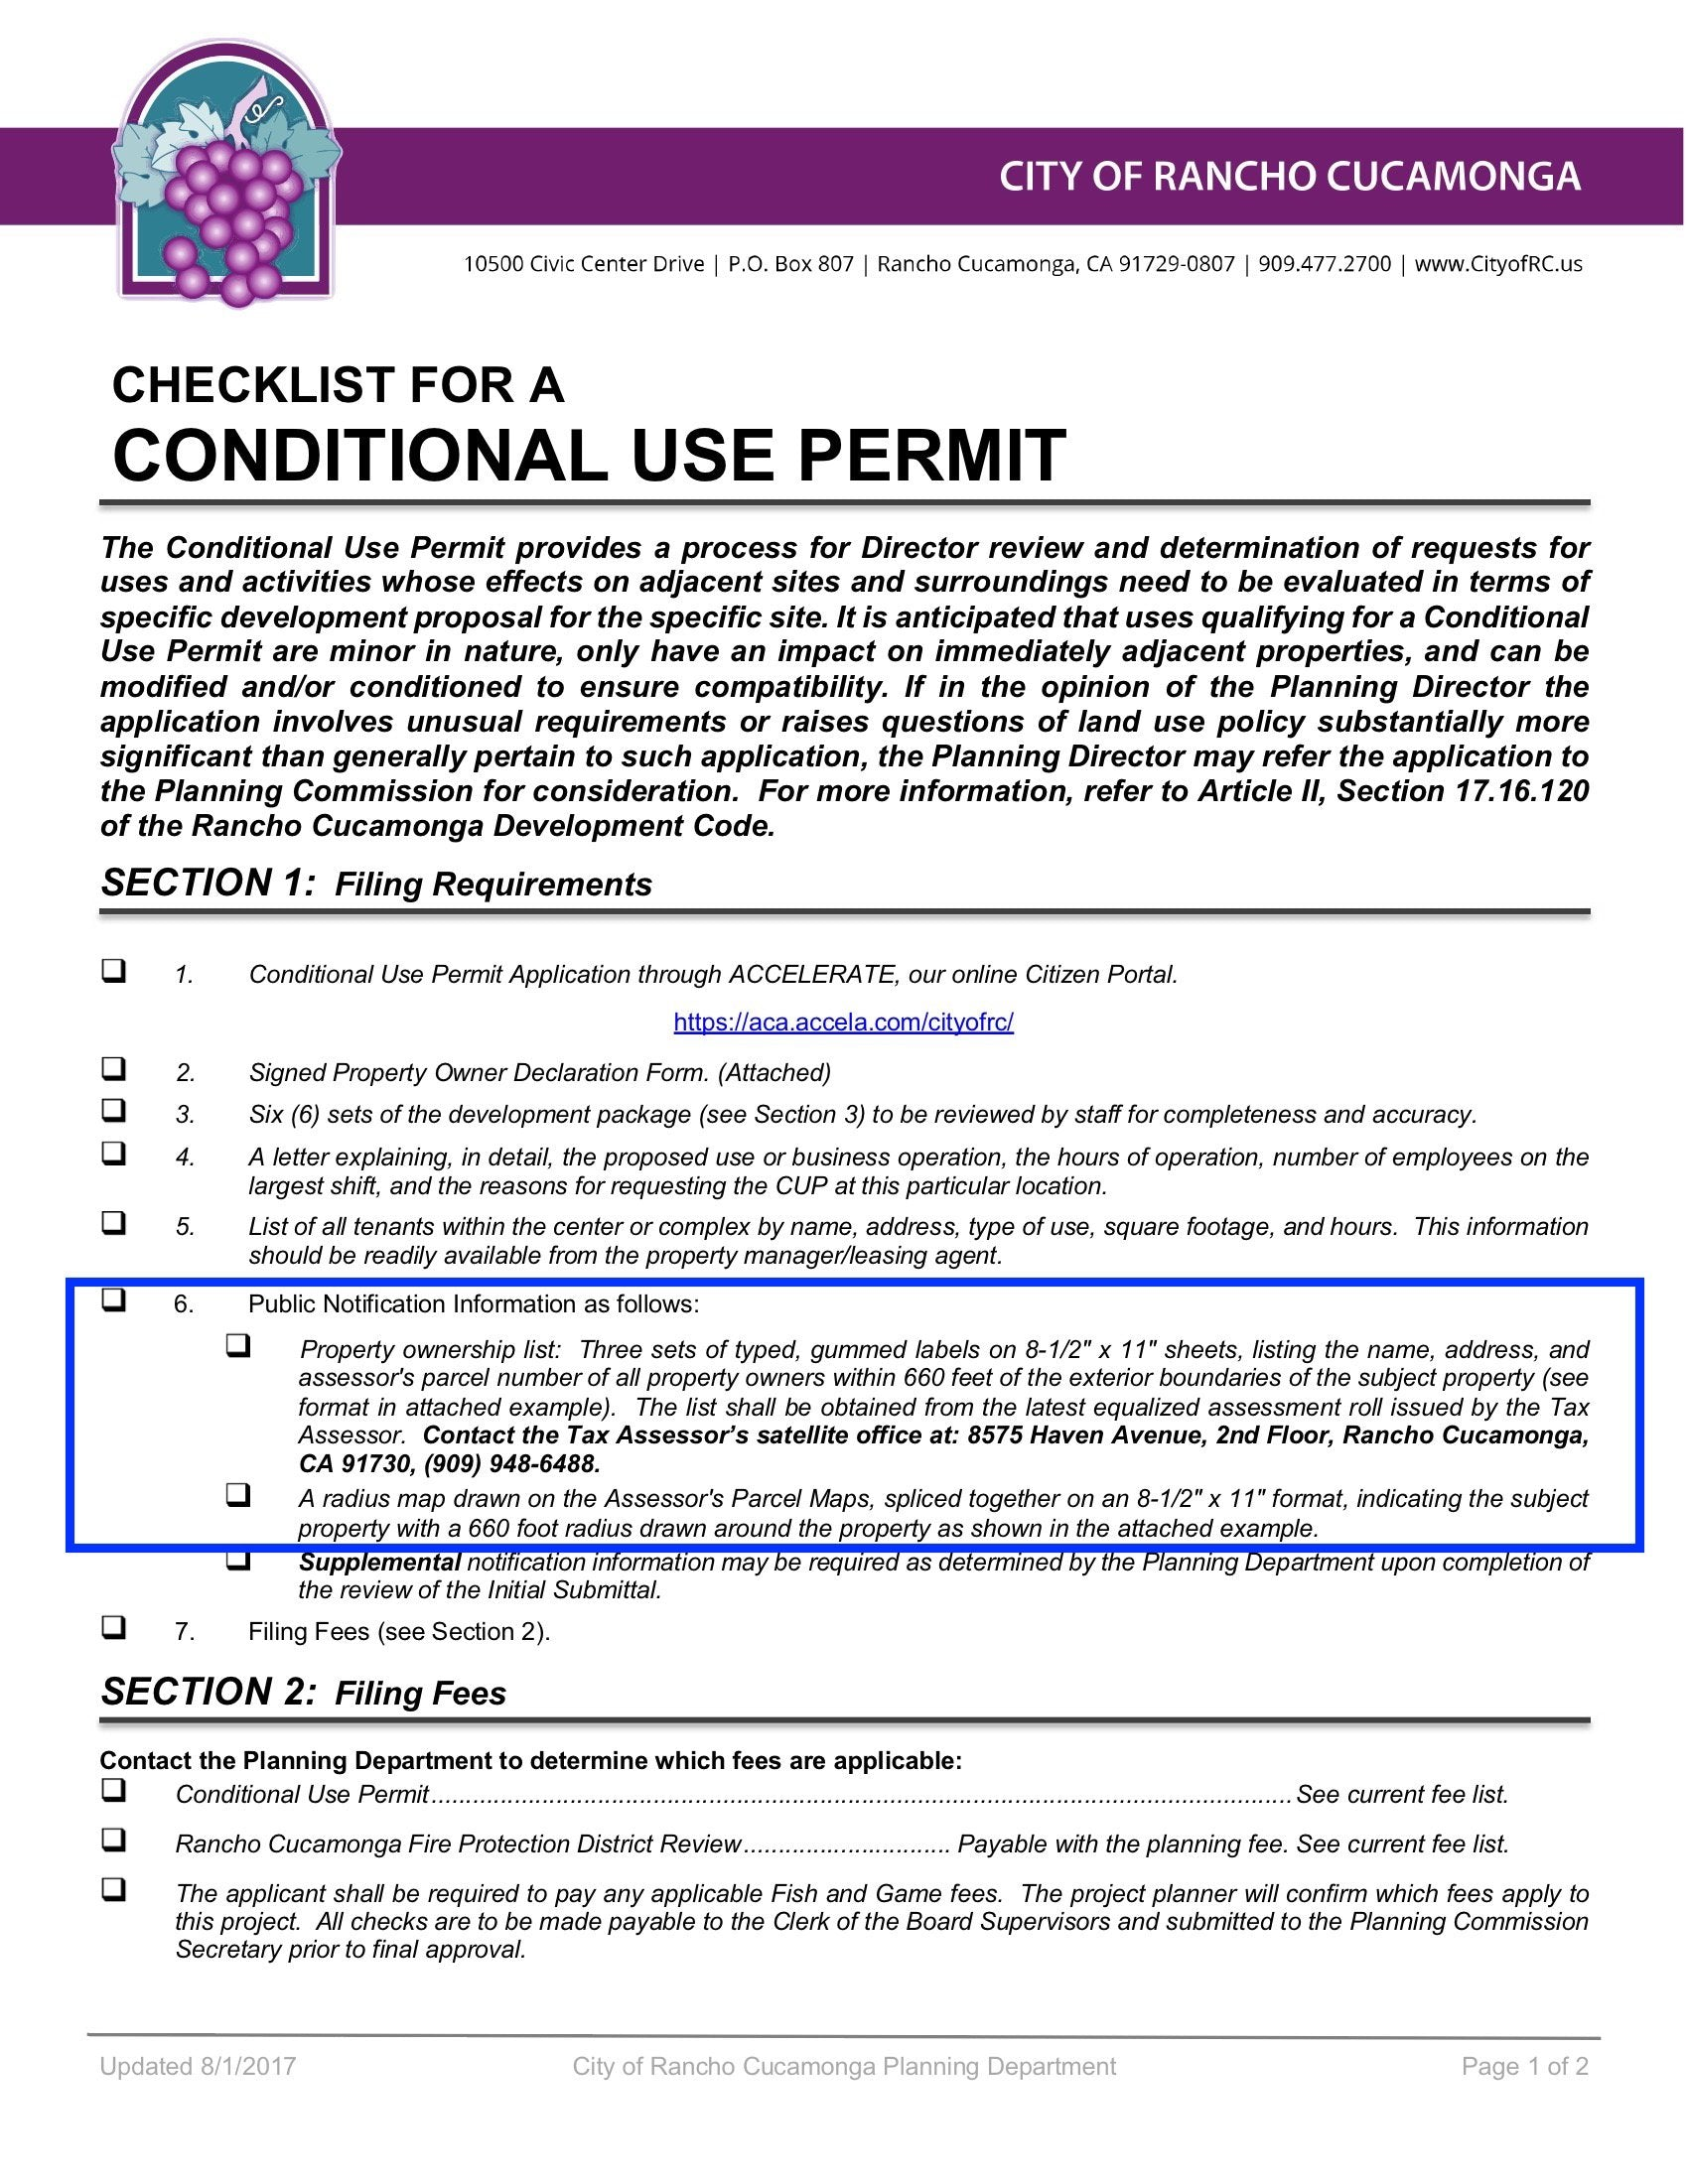 City of Rancho Cucamonga Checklist Conditional Use Permit Public Notification Information